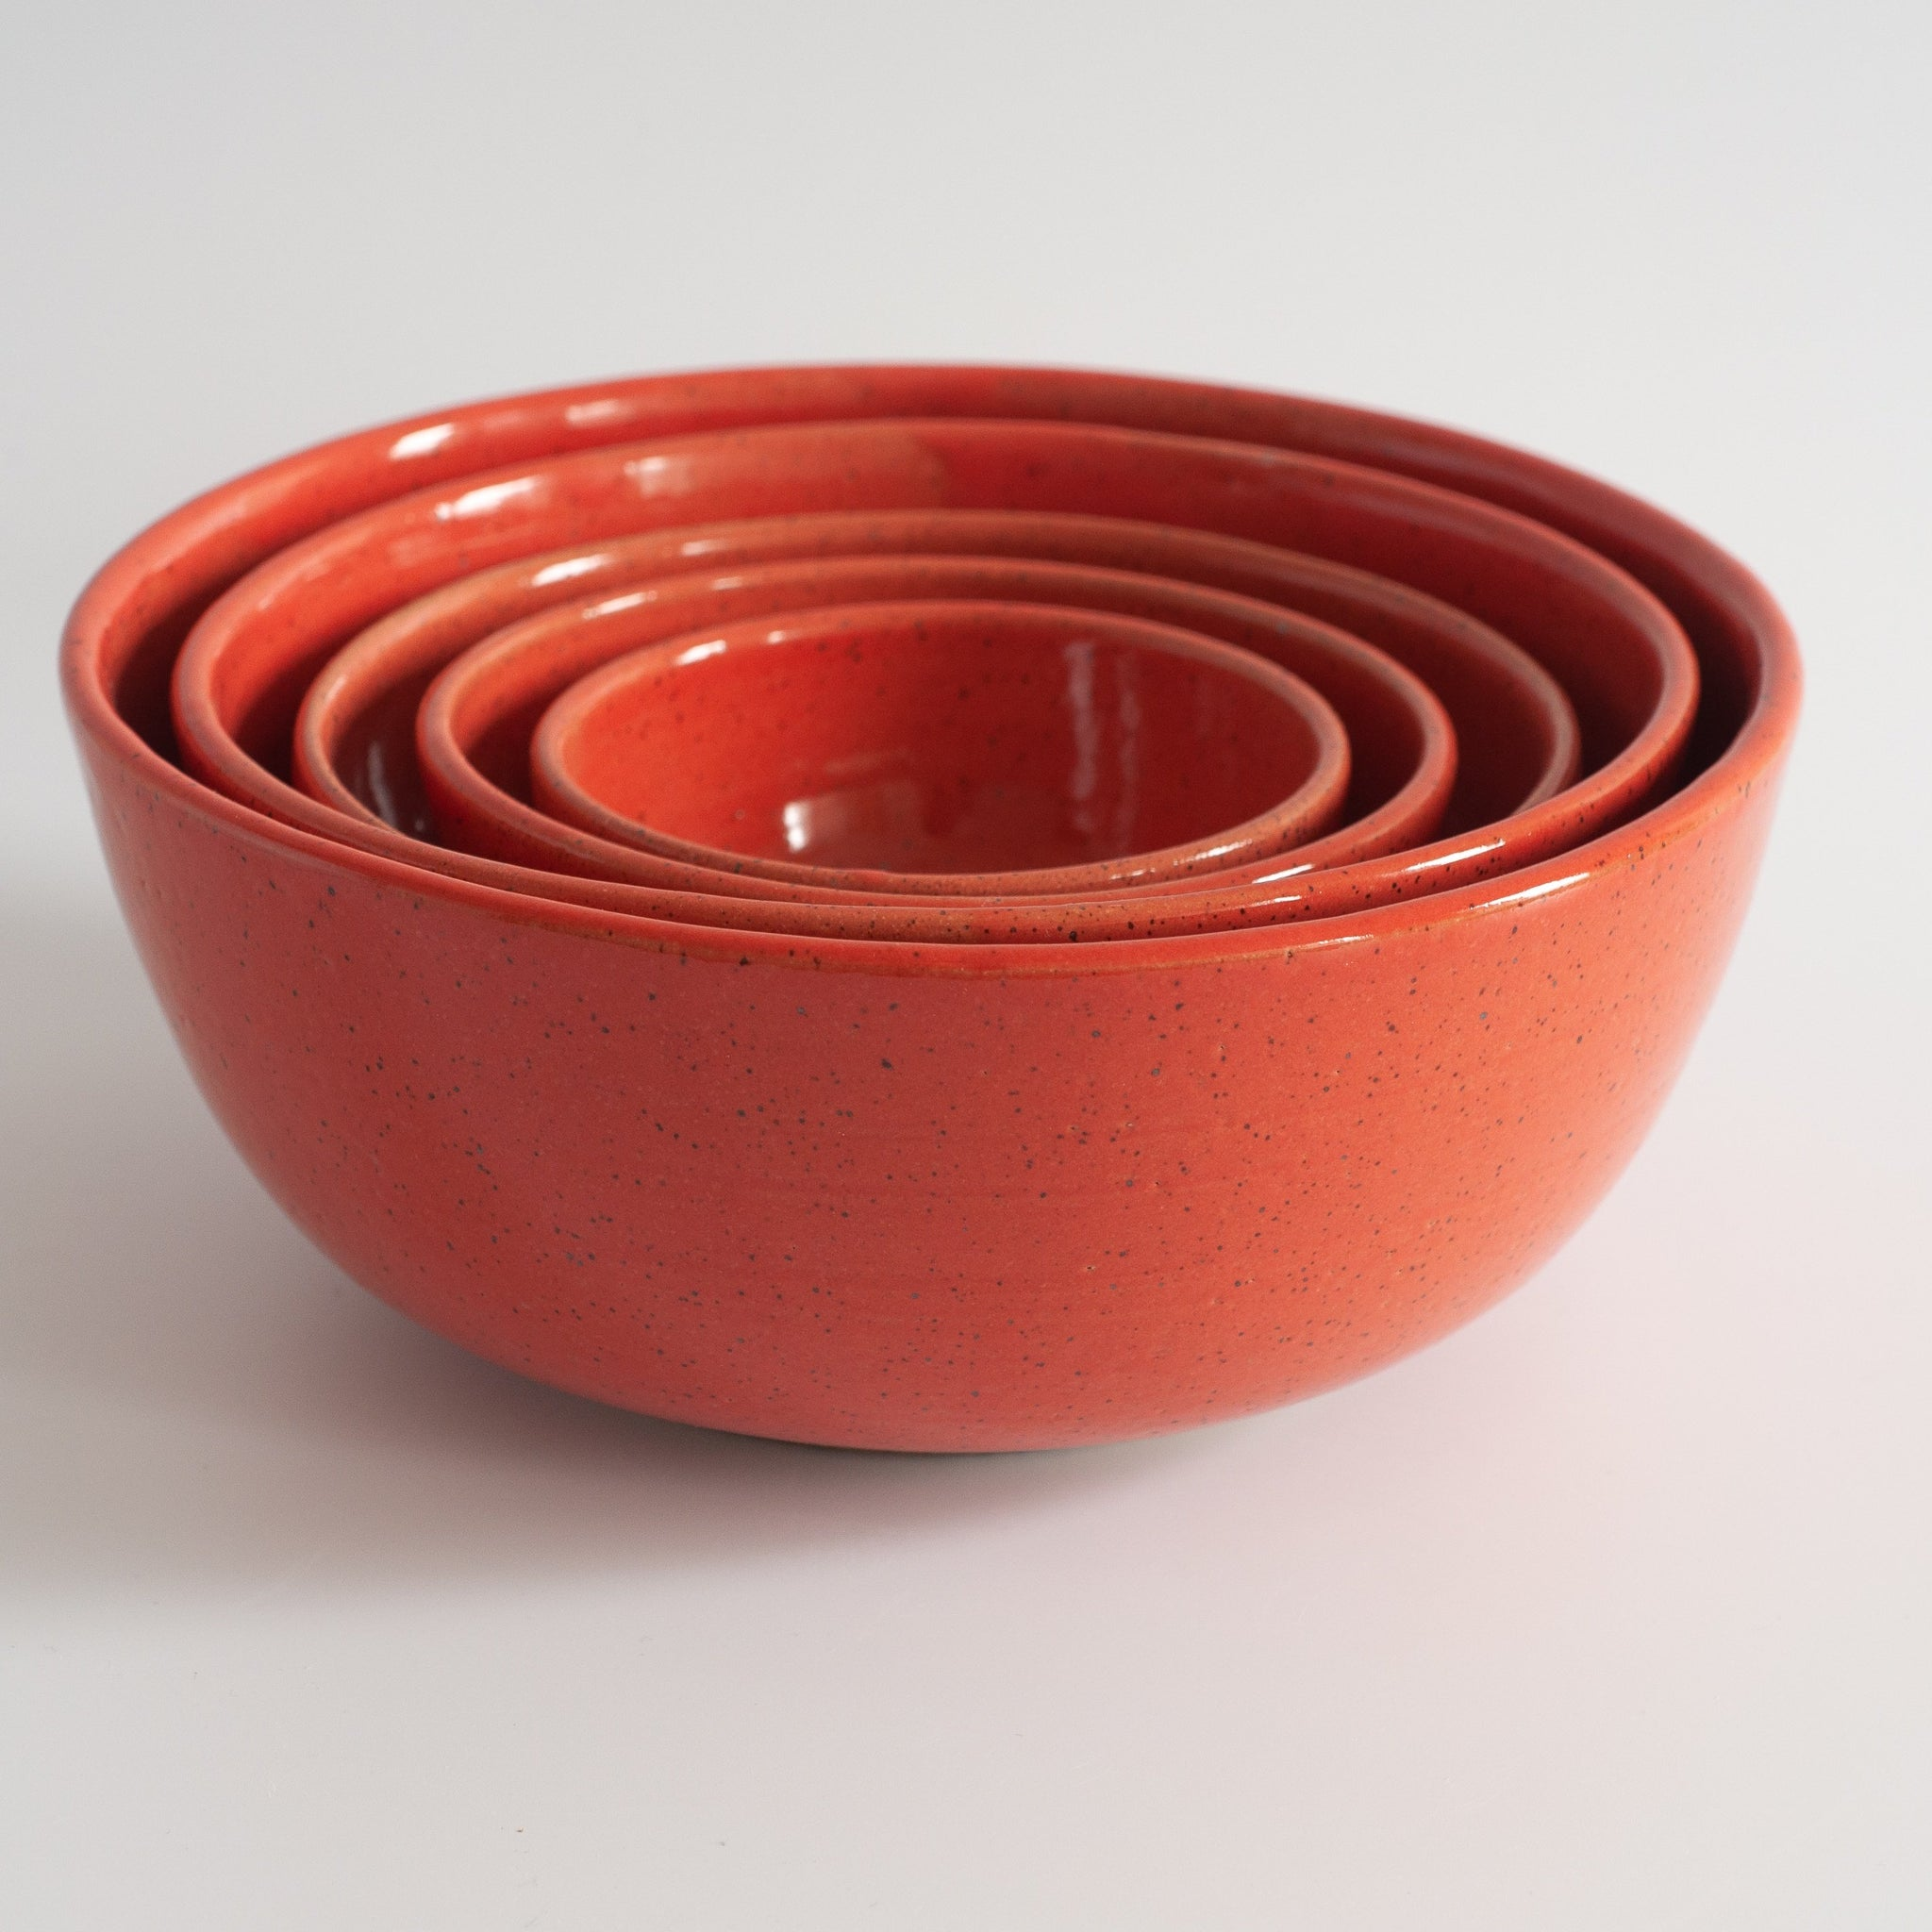 RPK Coral Nesting Mixing Bowls, Set of 5